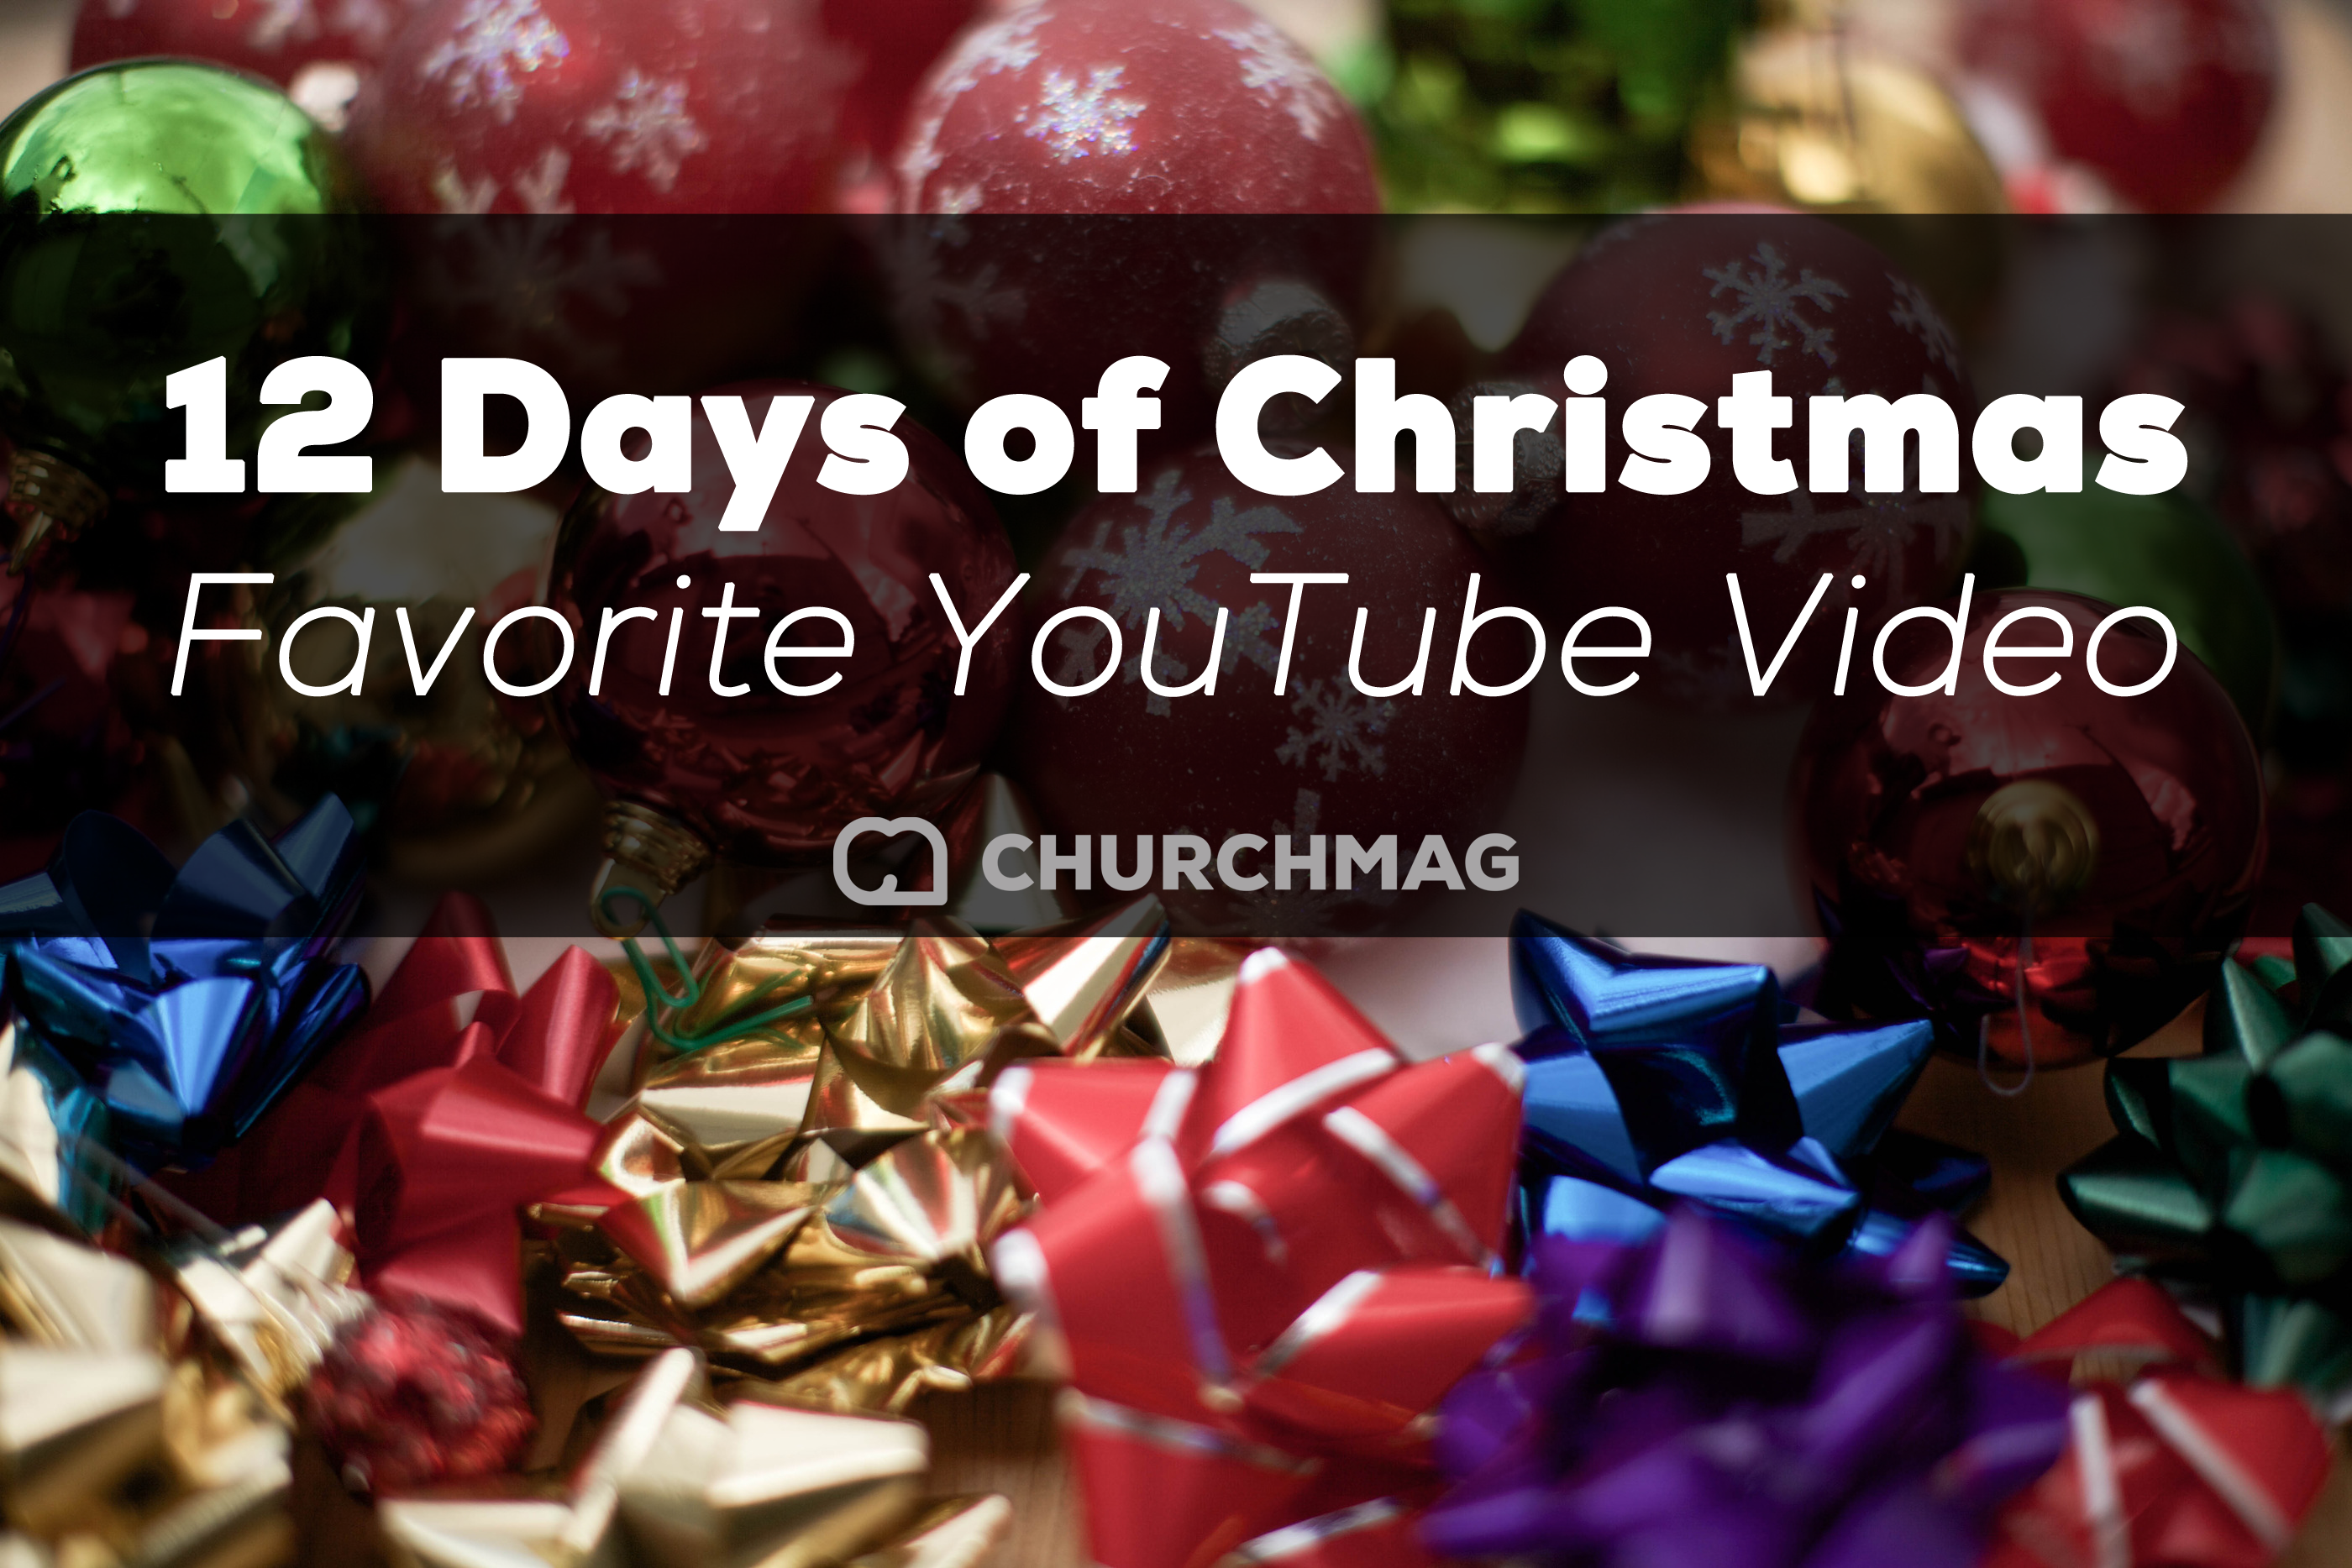 12 days of churchmag christmas favorite youtube video of 2014 - 12 Days Of Christmas Youtube